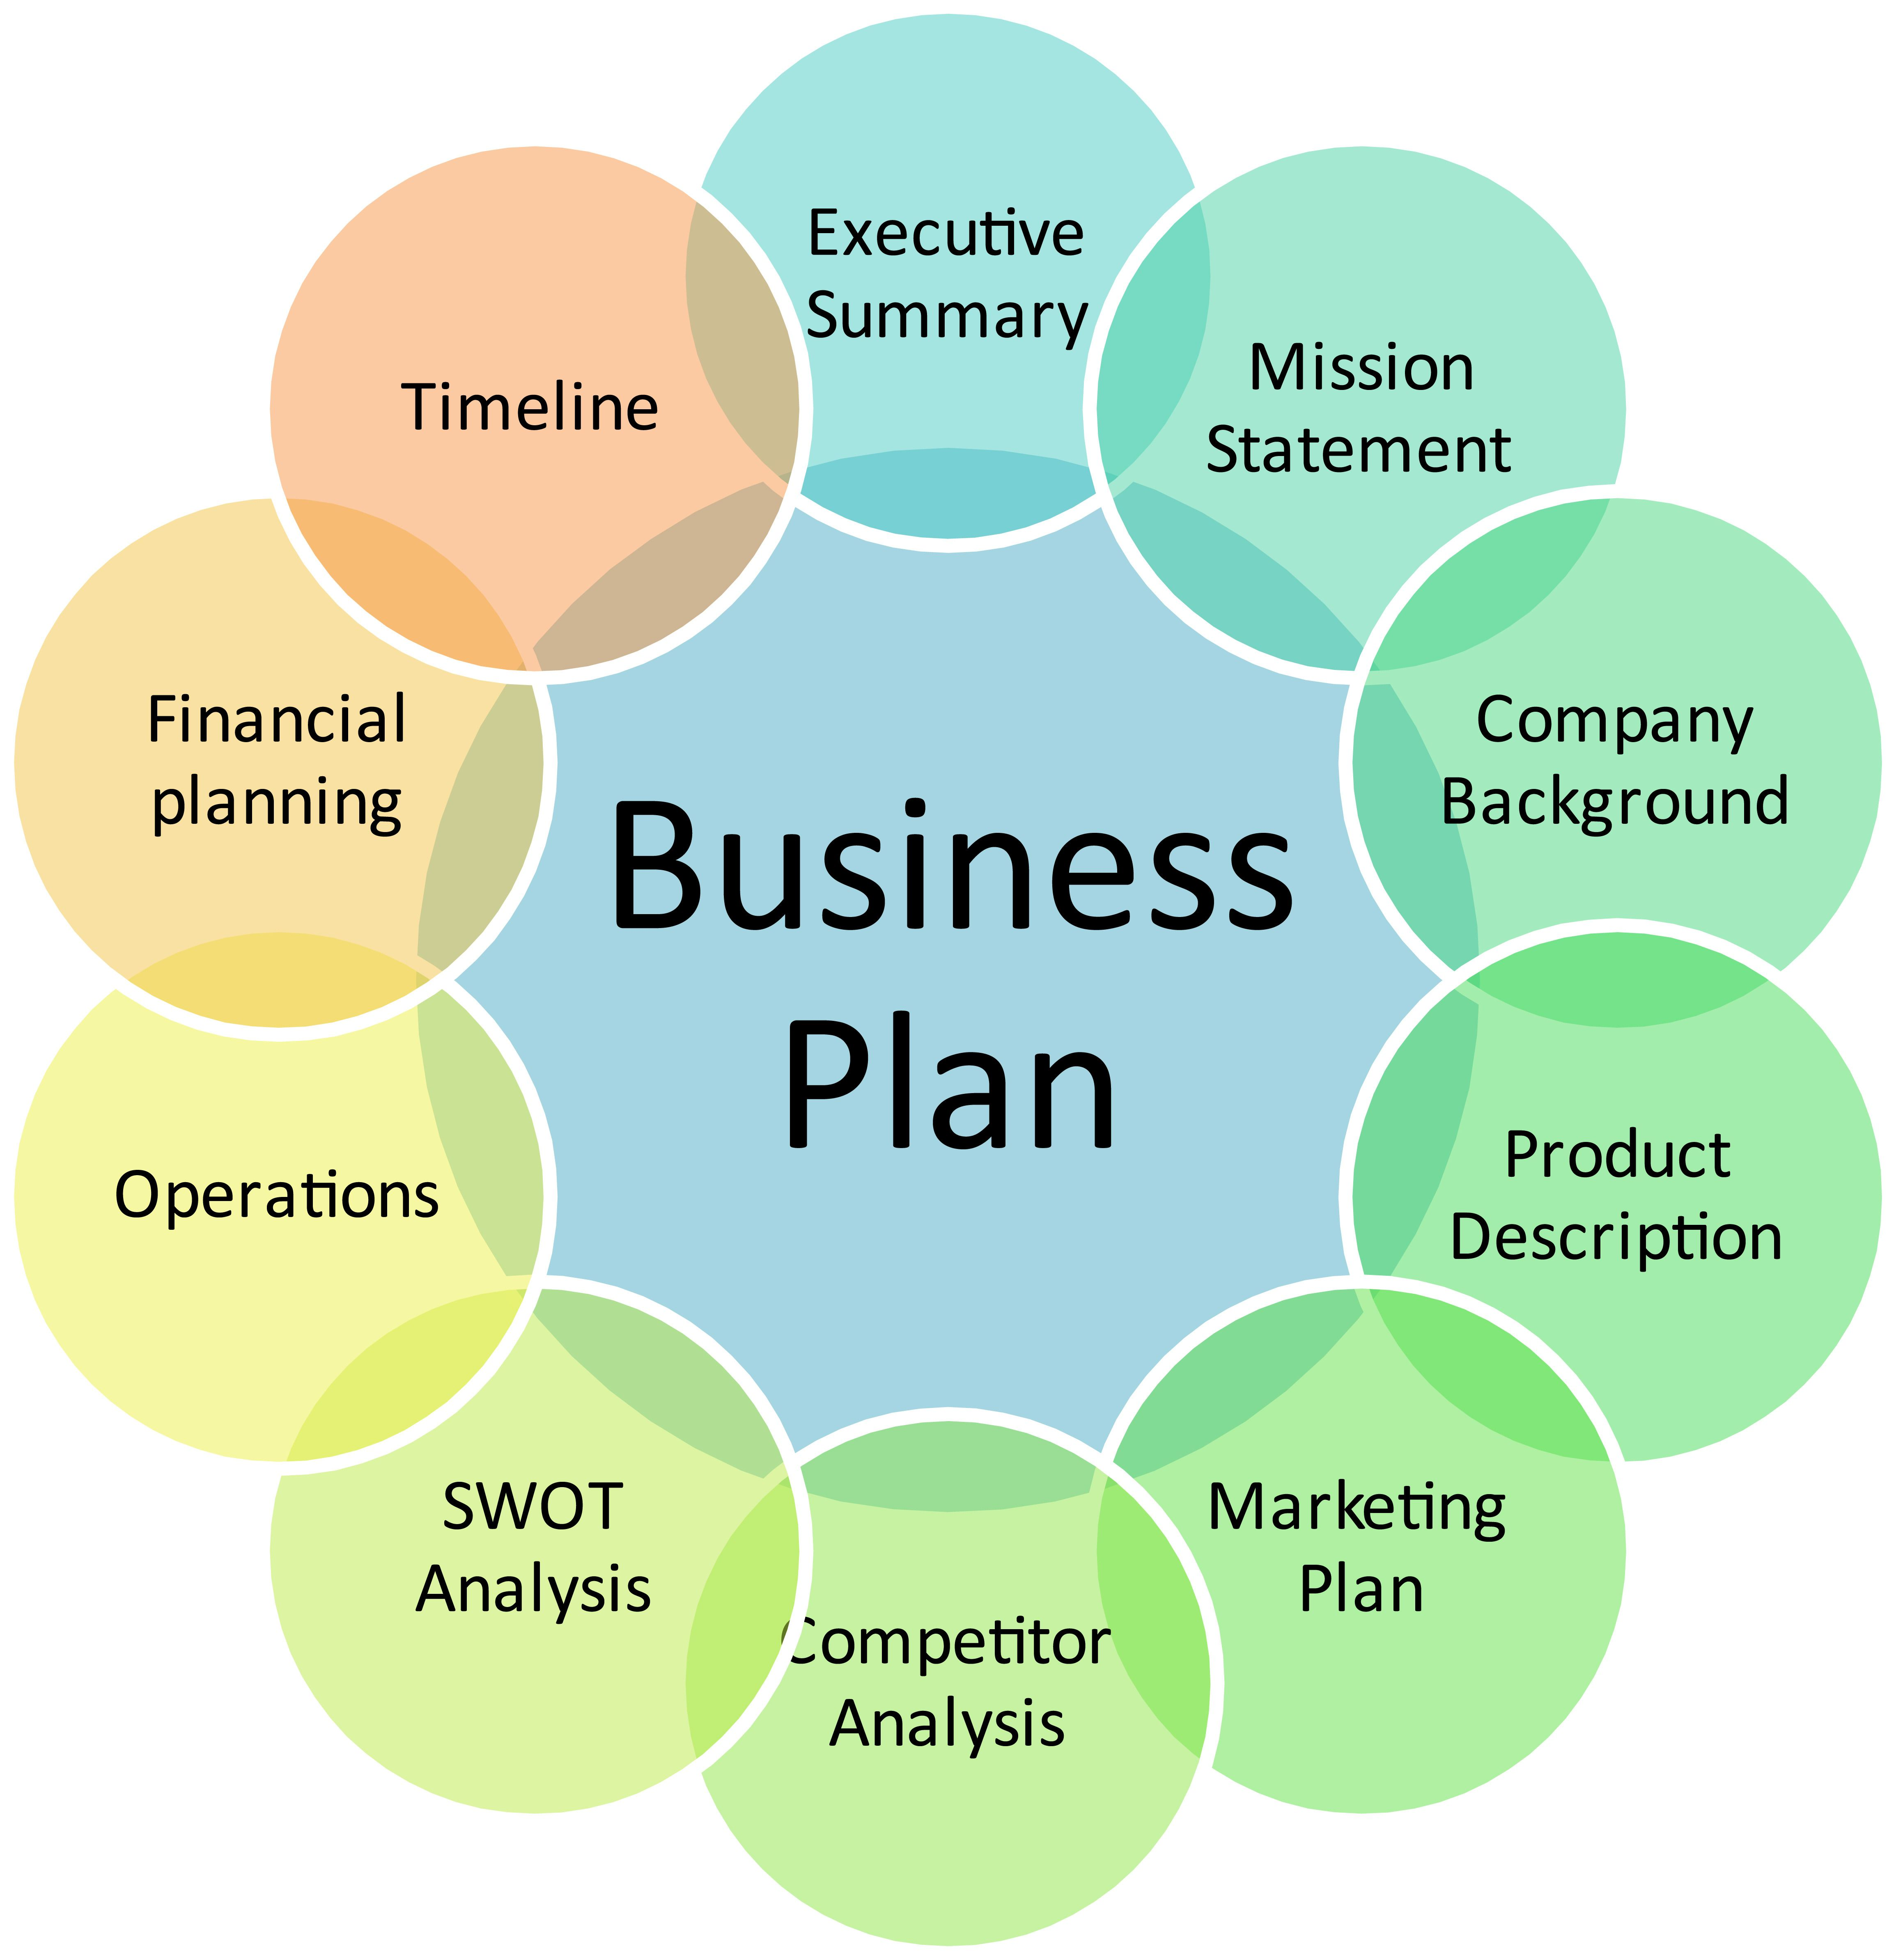 Bussiness plans